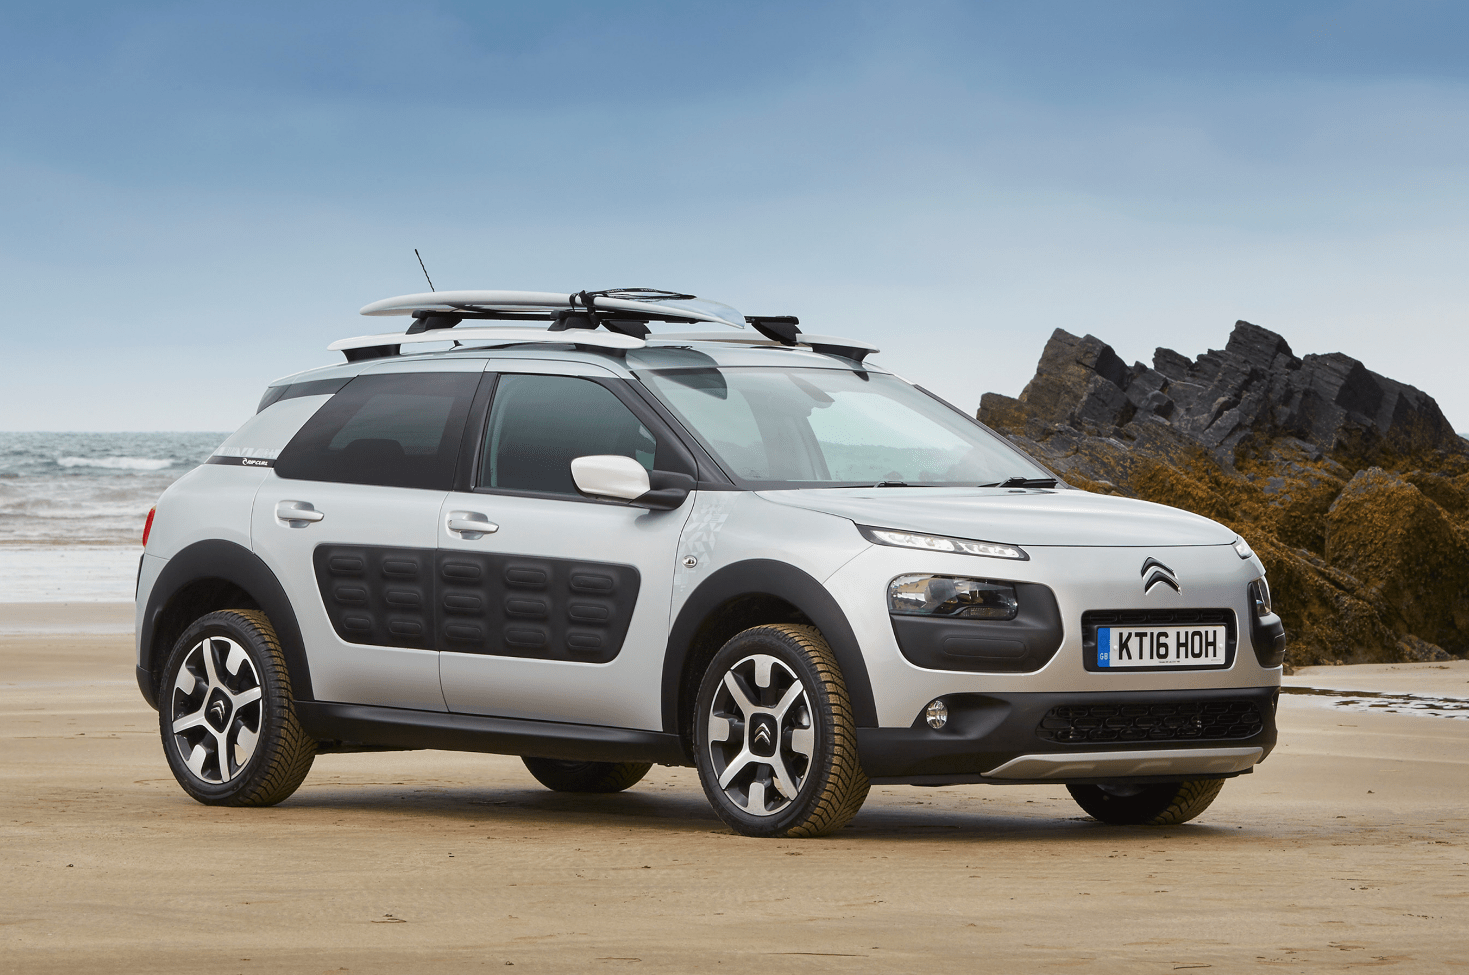 Silver Citroen C4 Cactus parked on a beach